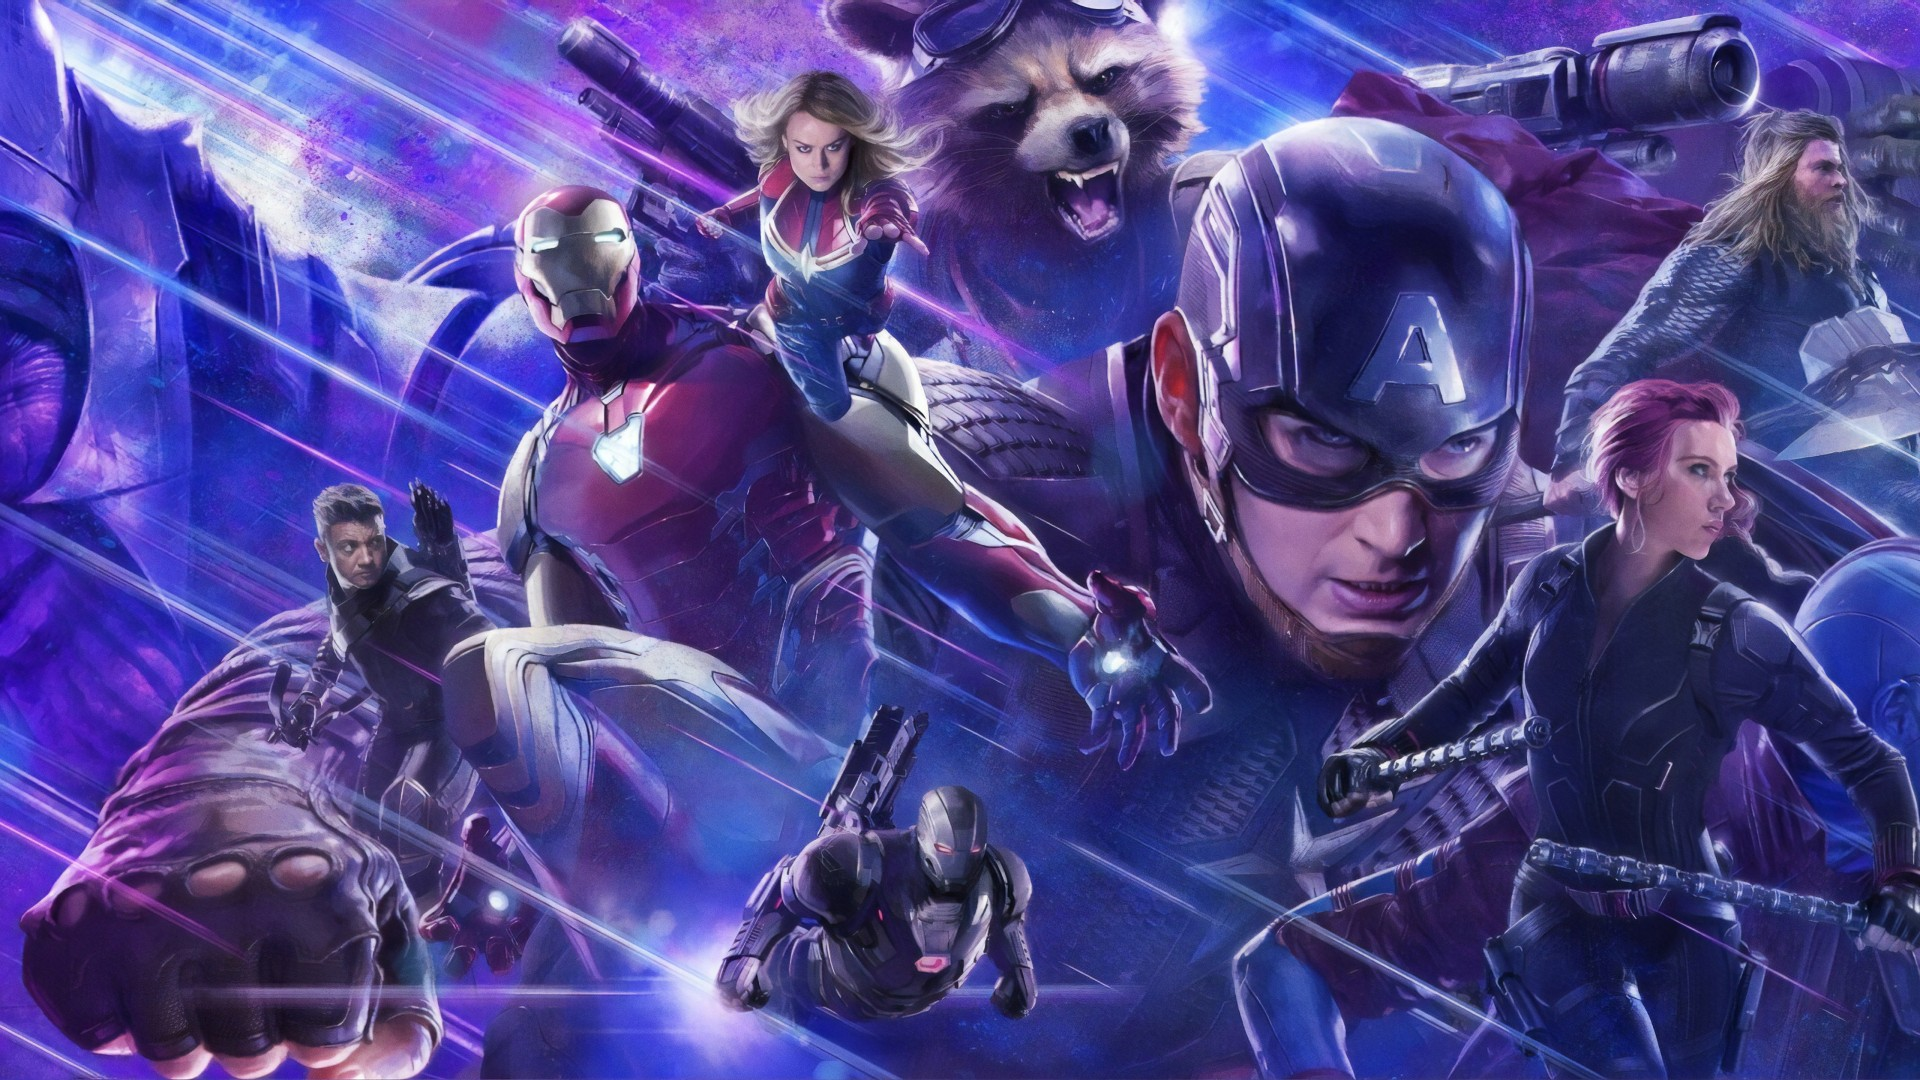 Iphone 5s Wallpaper 3d Avengers Endgame 5k Wallpapers Hd Wallpapers Id 28385